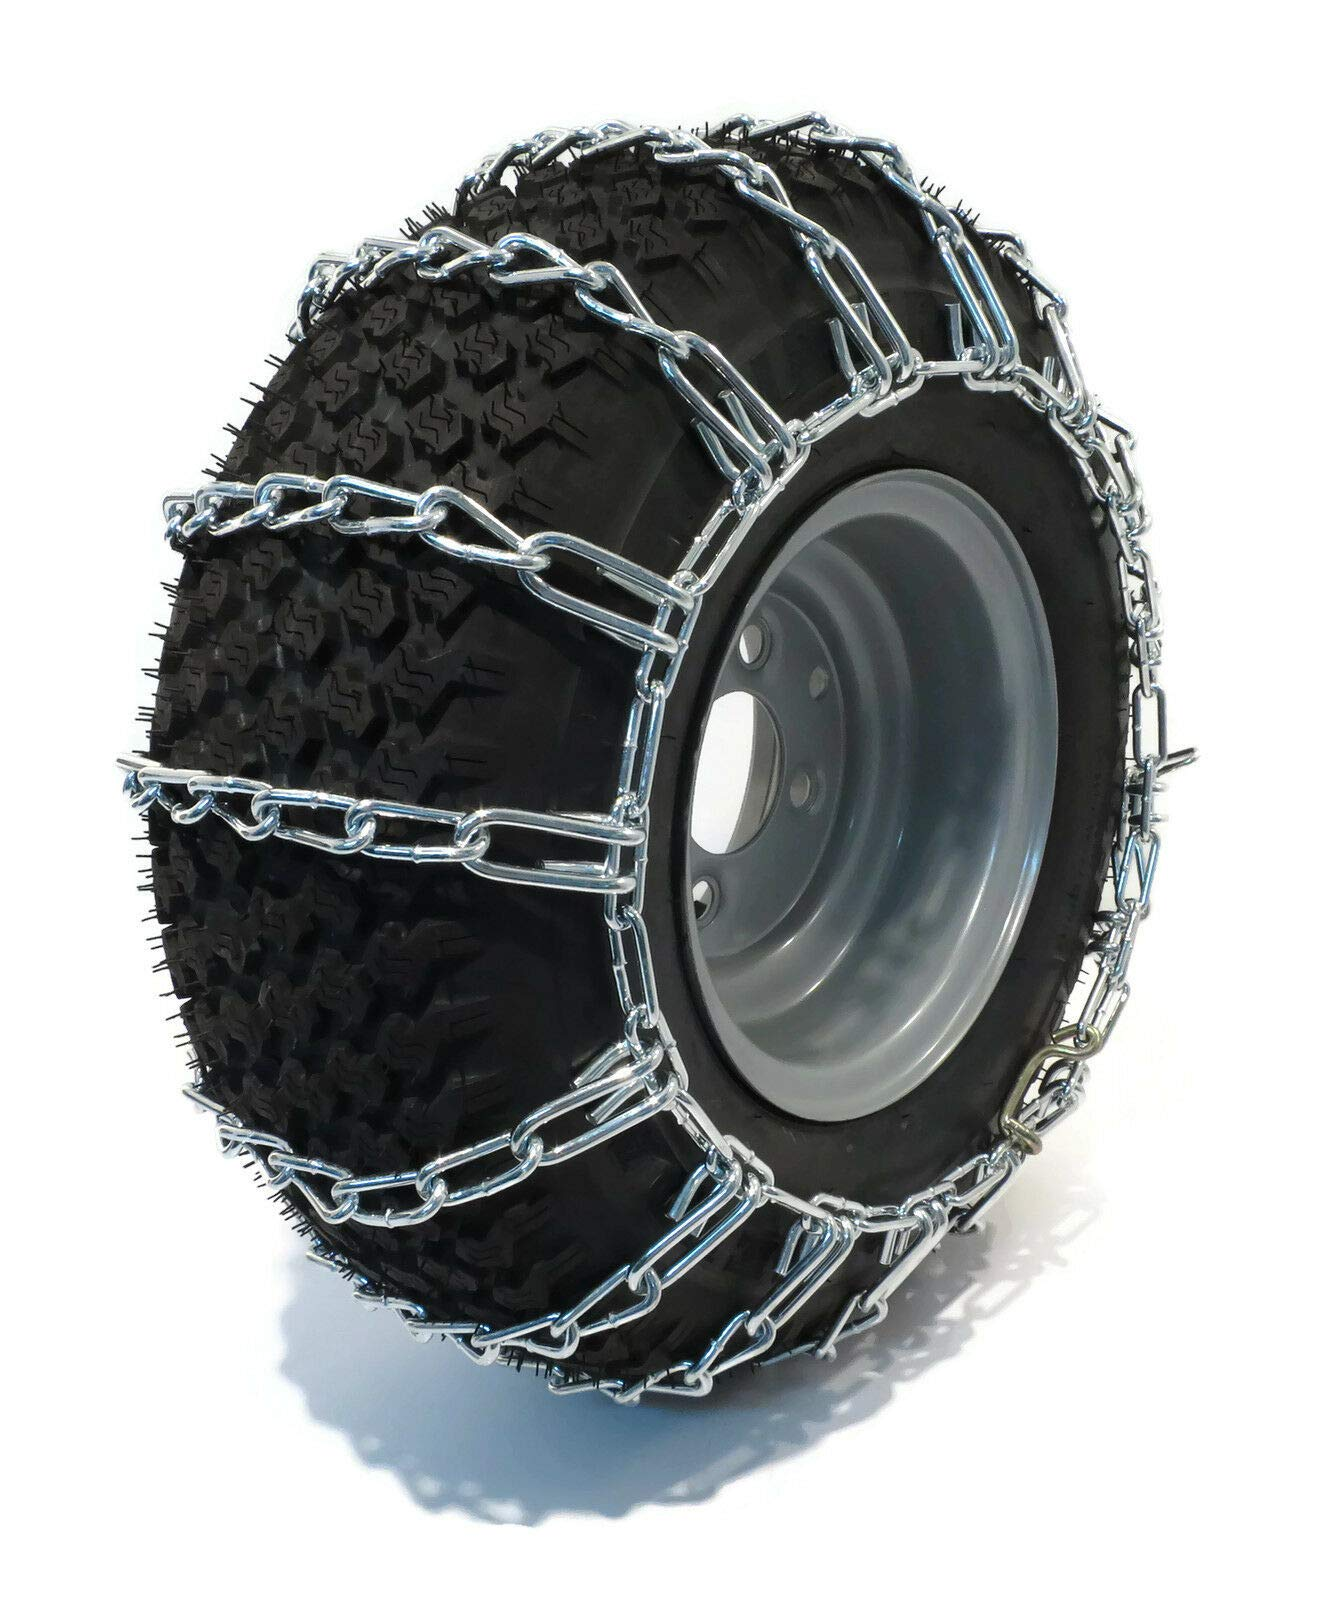 Tire Chains Tractor Mower Snow Blower Thrower 2-Link 23X10.50X12 23X1050X12, 2 Link Spacing by Tire Chains